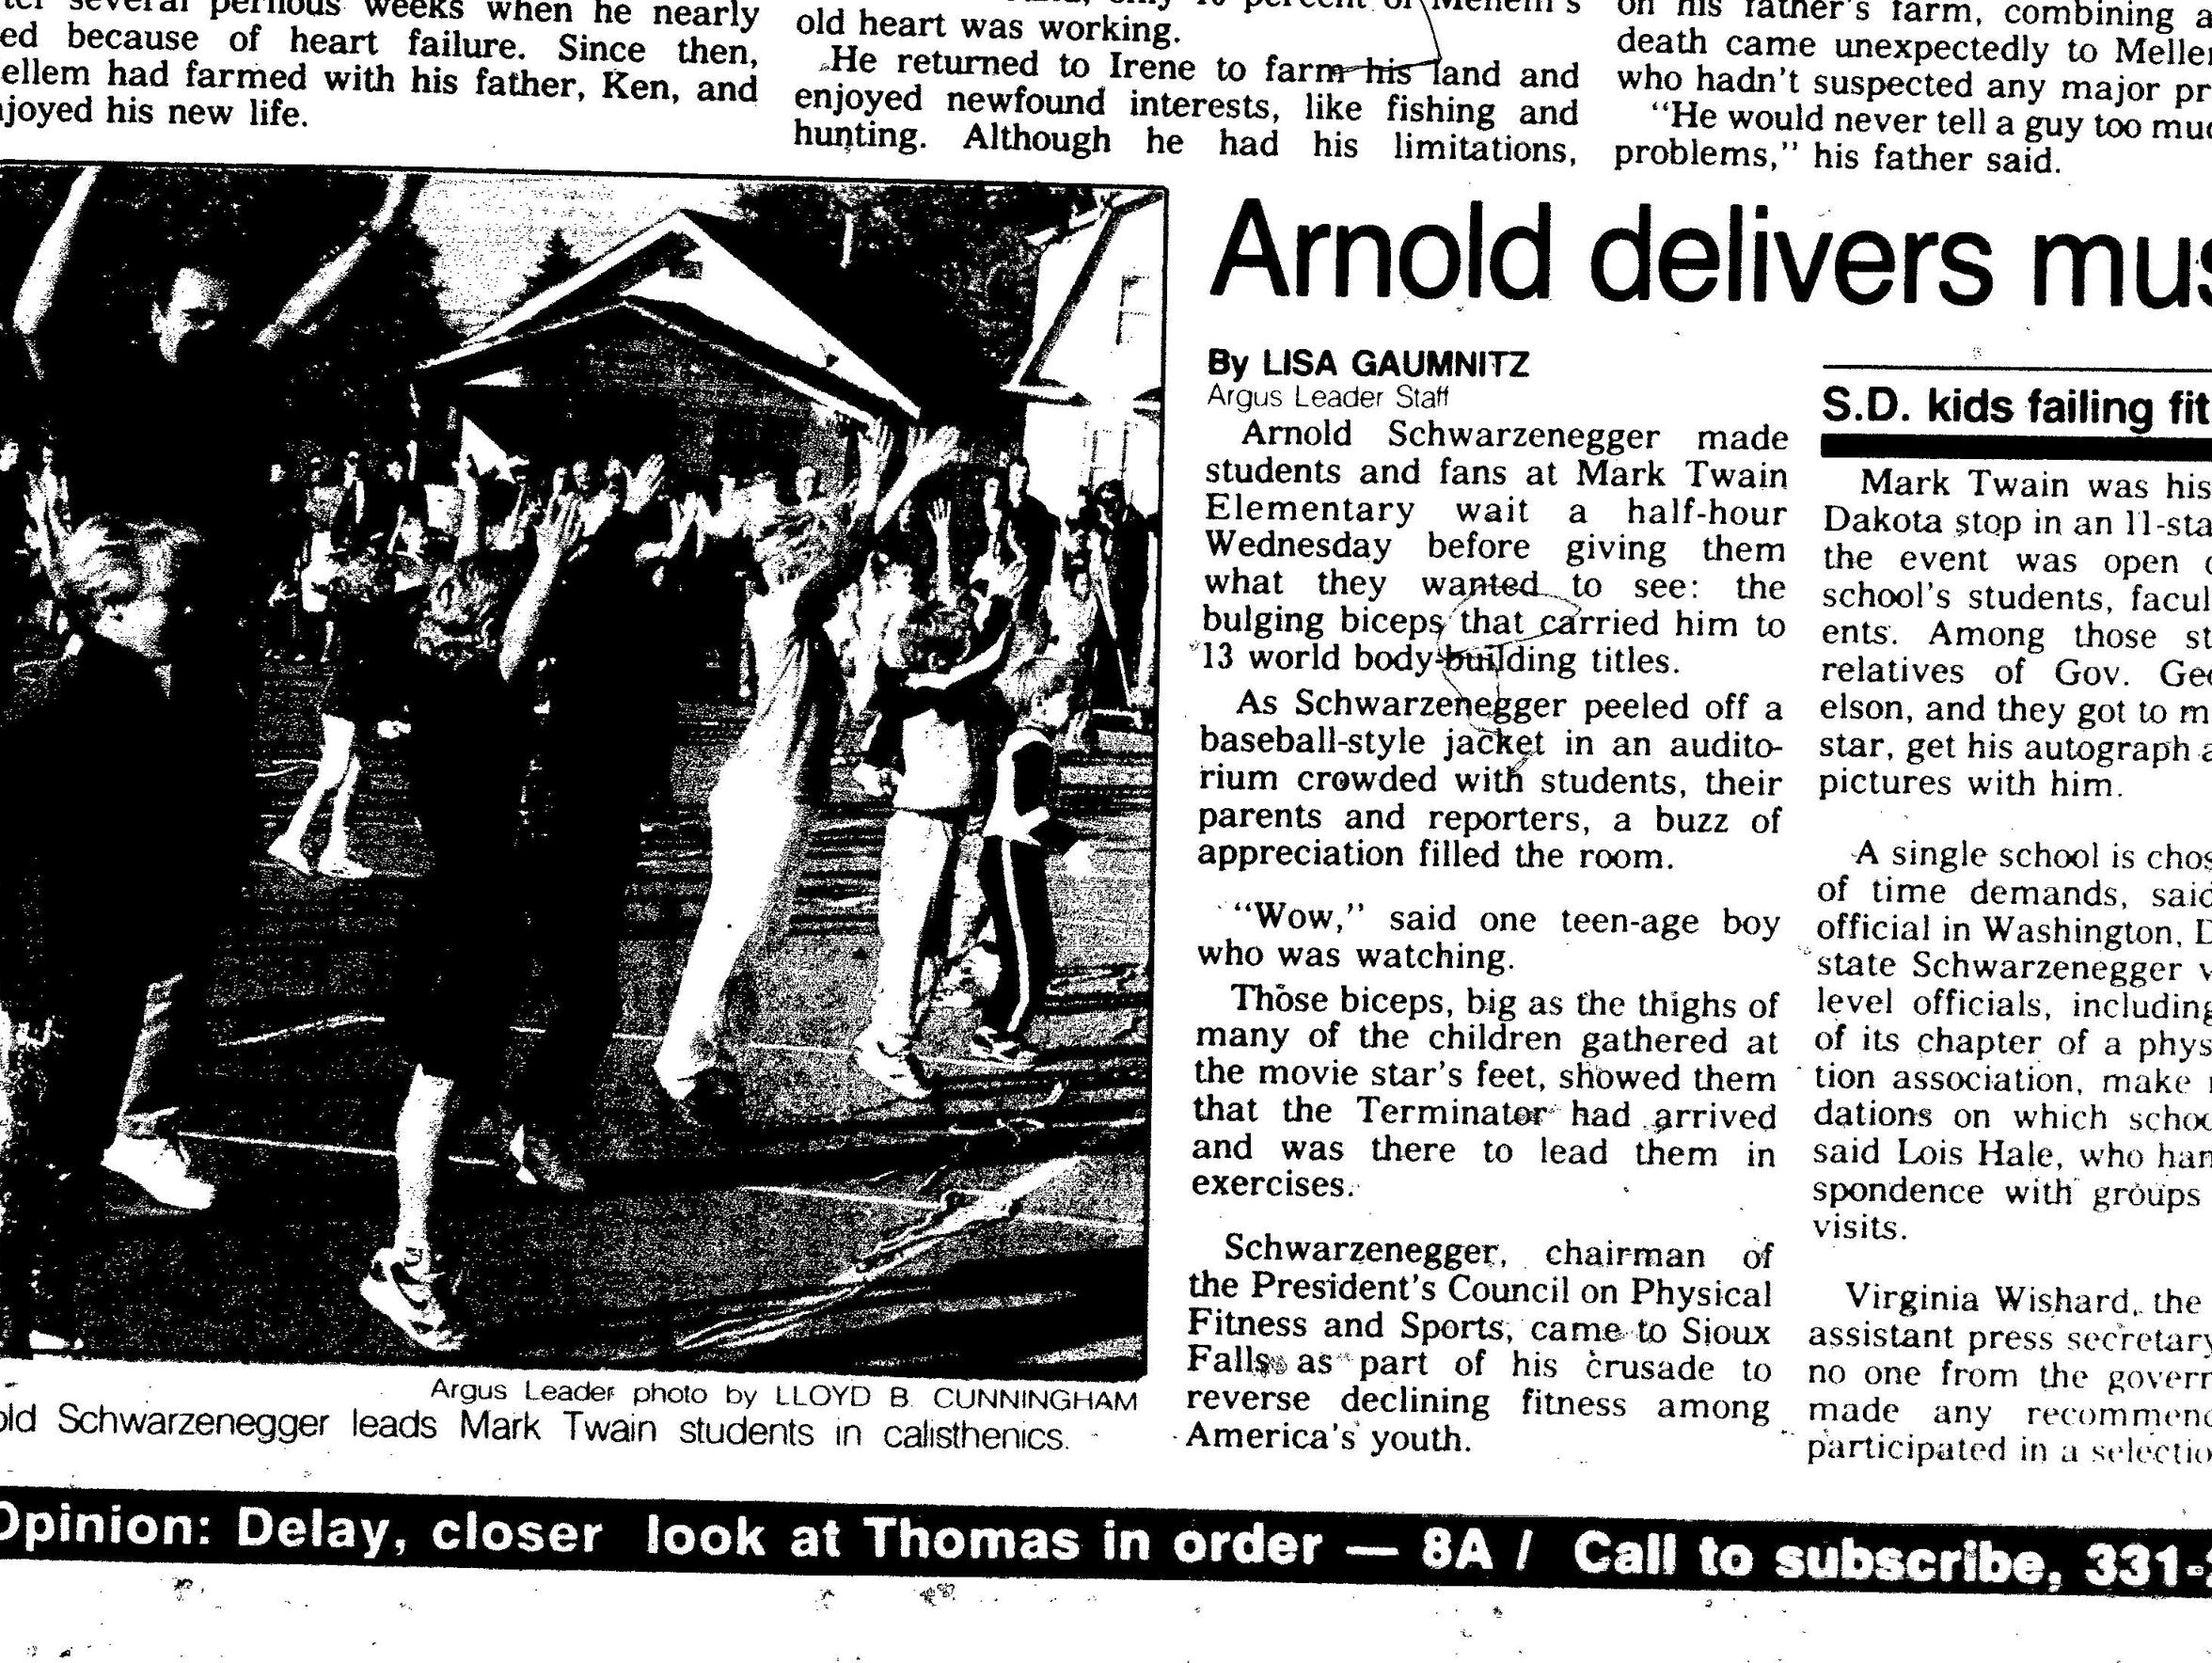 An Argus Leader newspaper clipping from when Arnold